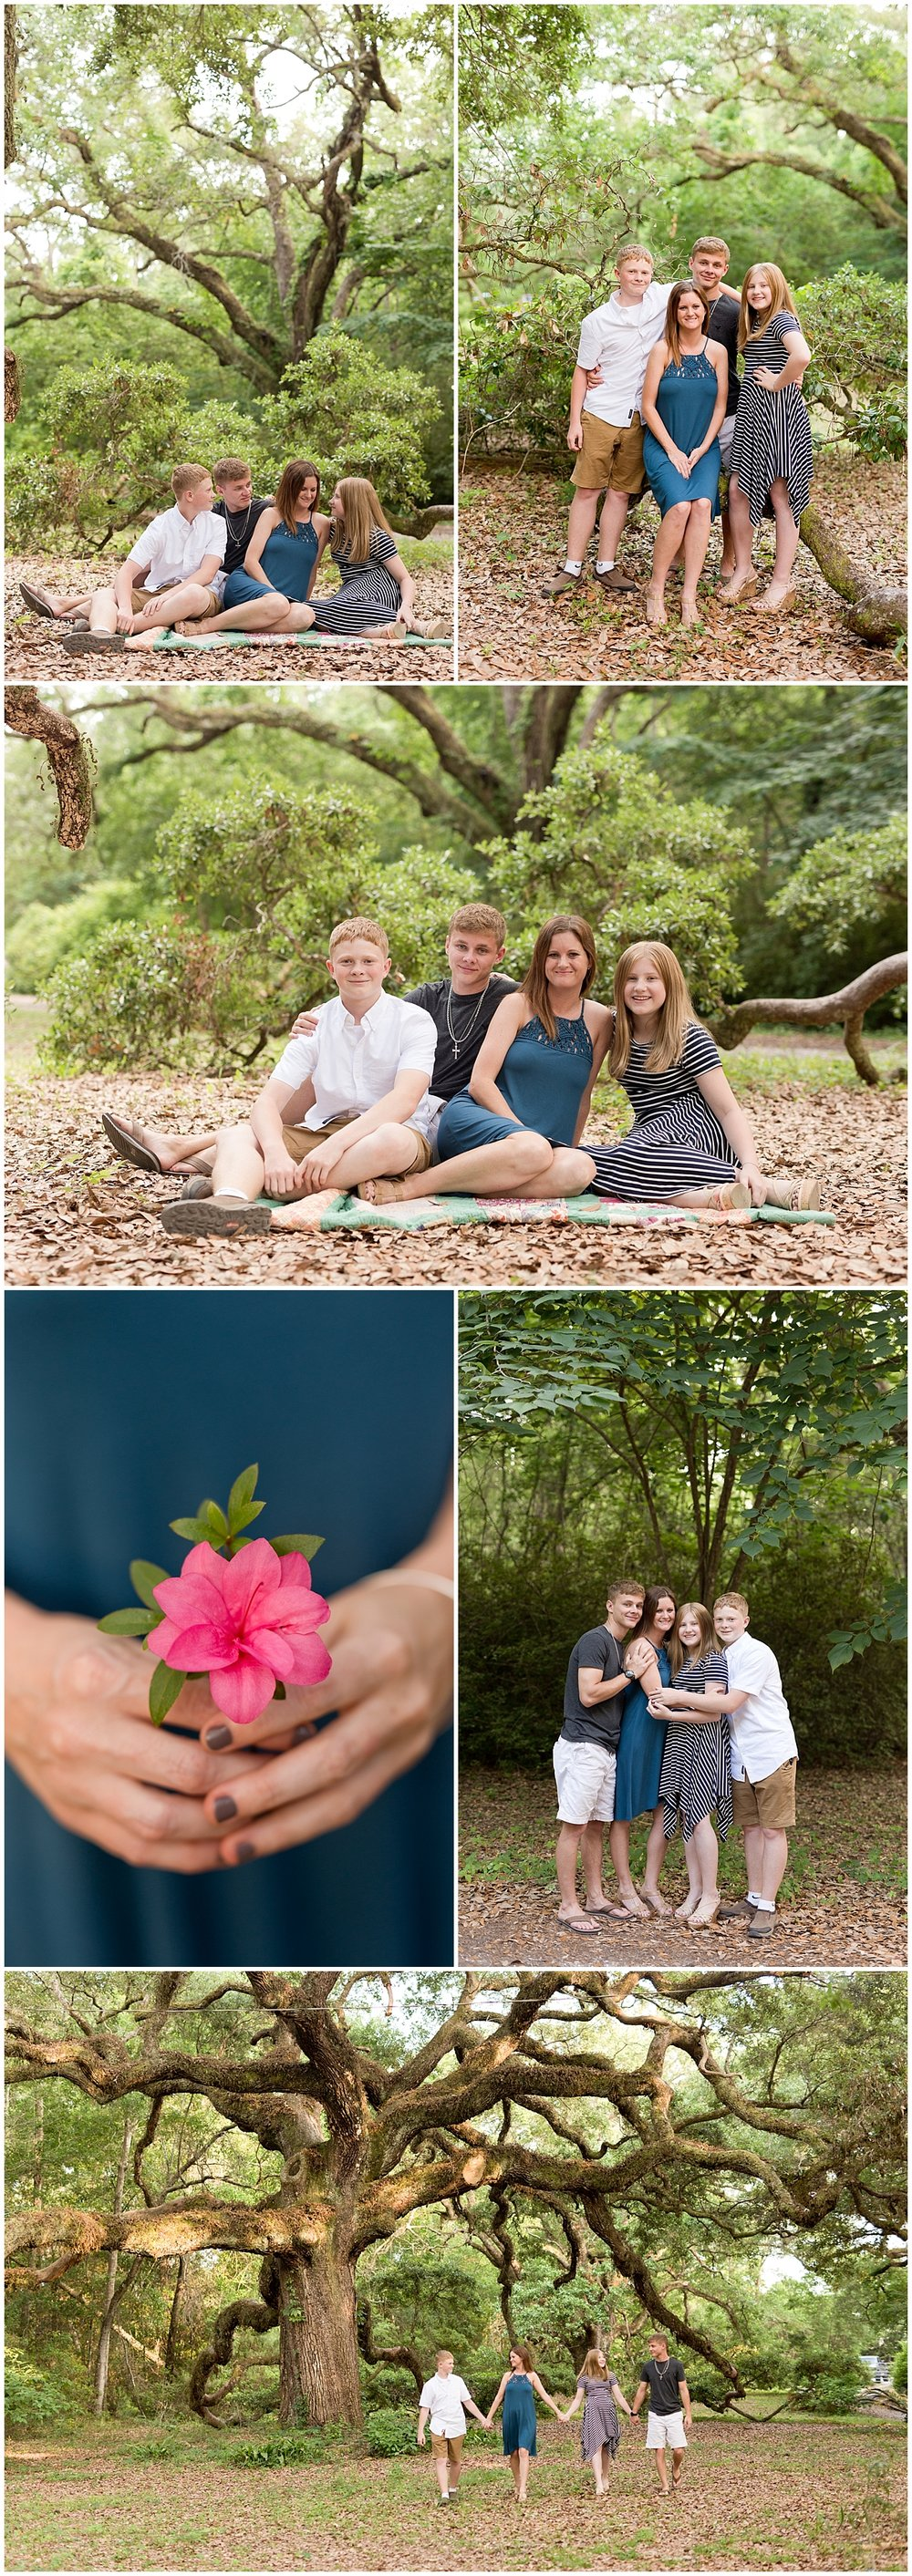 Ocean Springs family photos with oak trees - mom with adolescent sons and daughter outdoors